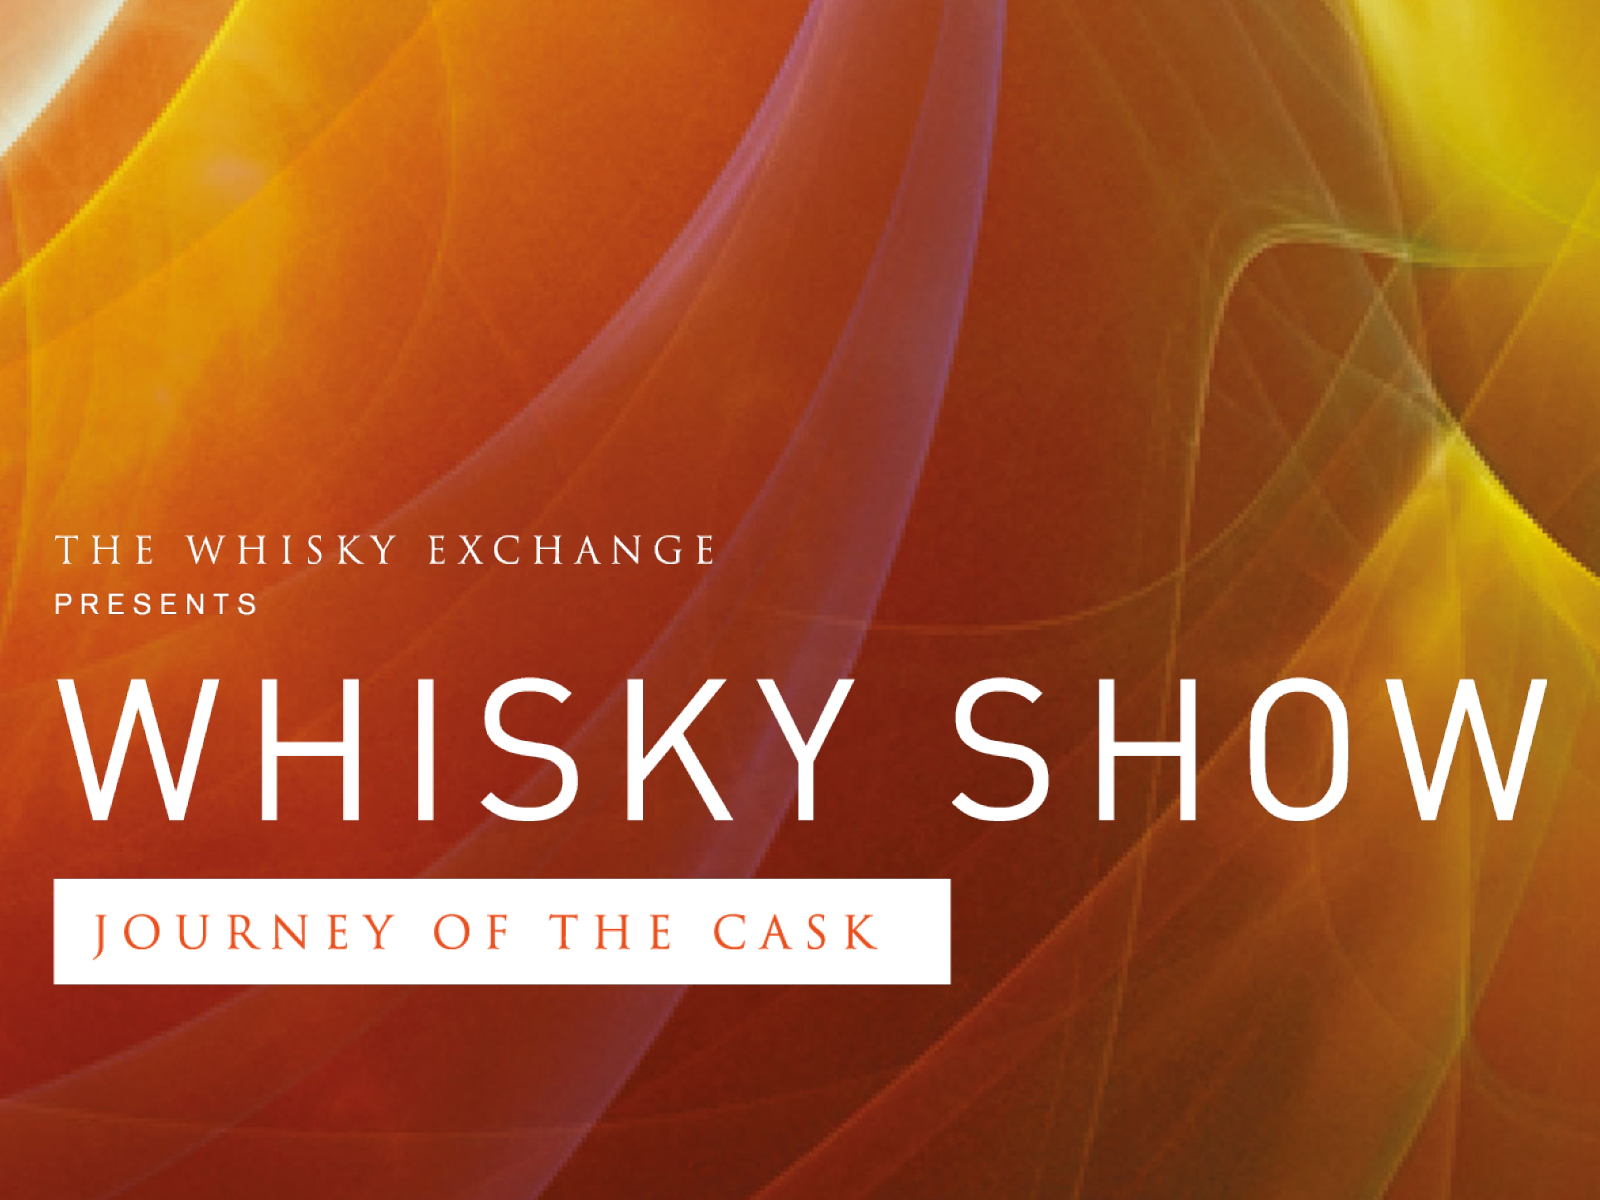 JOURNEY OF THE CASK WHISKY SHOW 2019 - 28/29TH SEPTEMBER